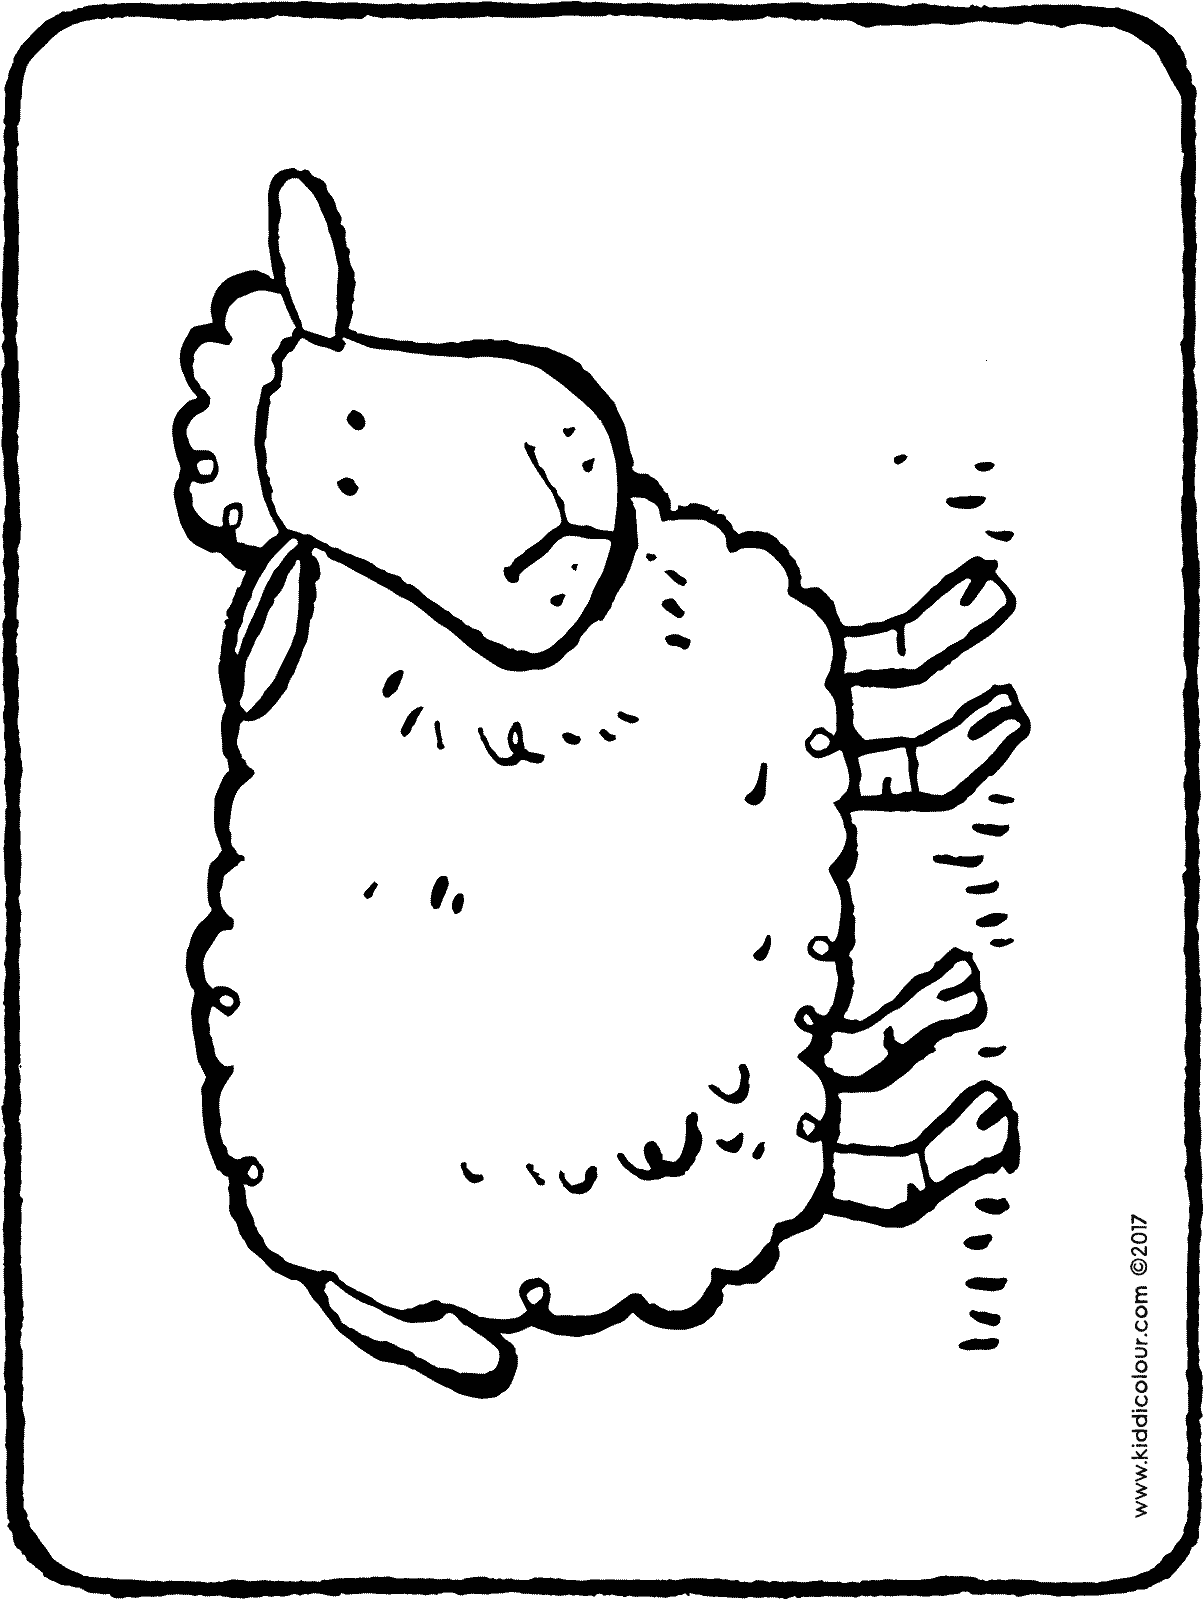 sheep and dogs coloring pages - photo#39